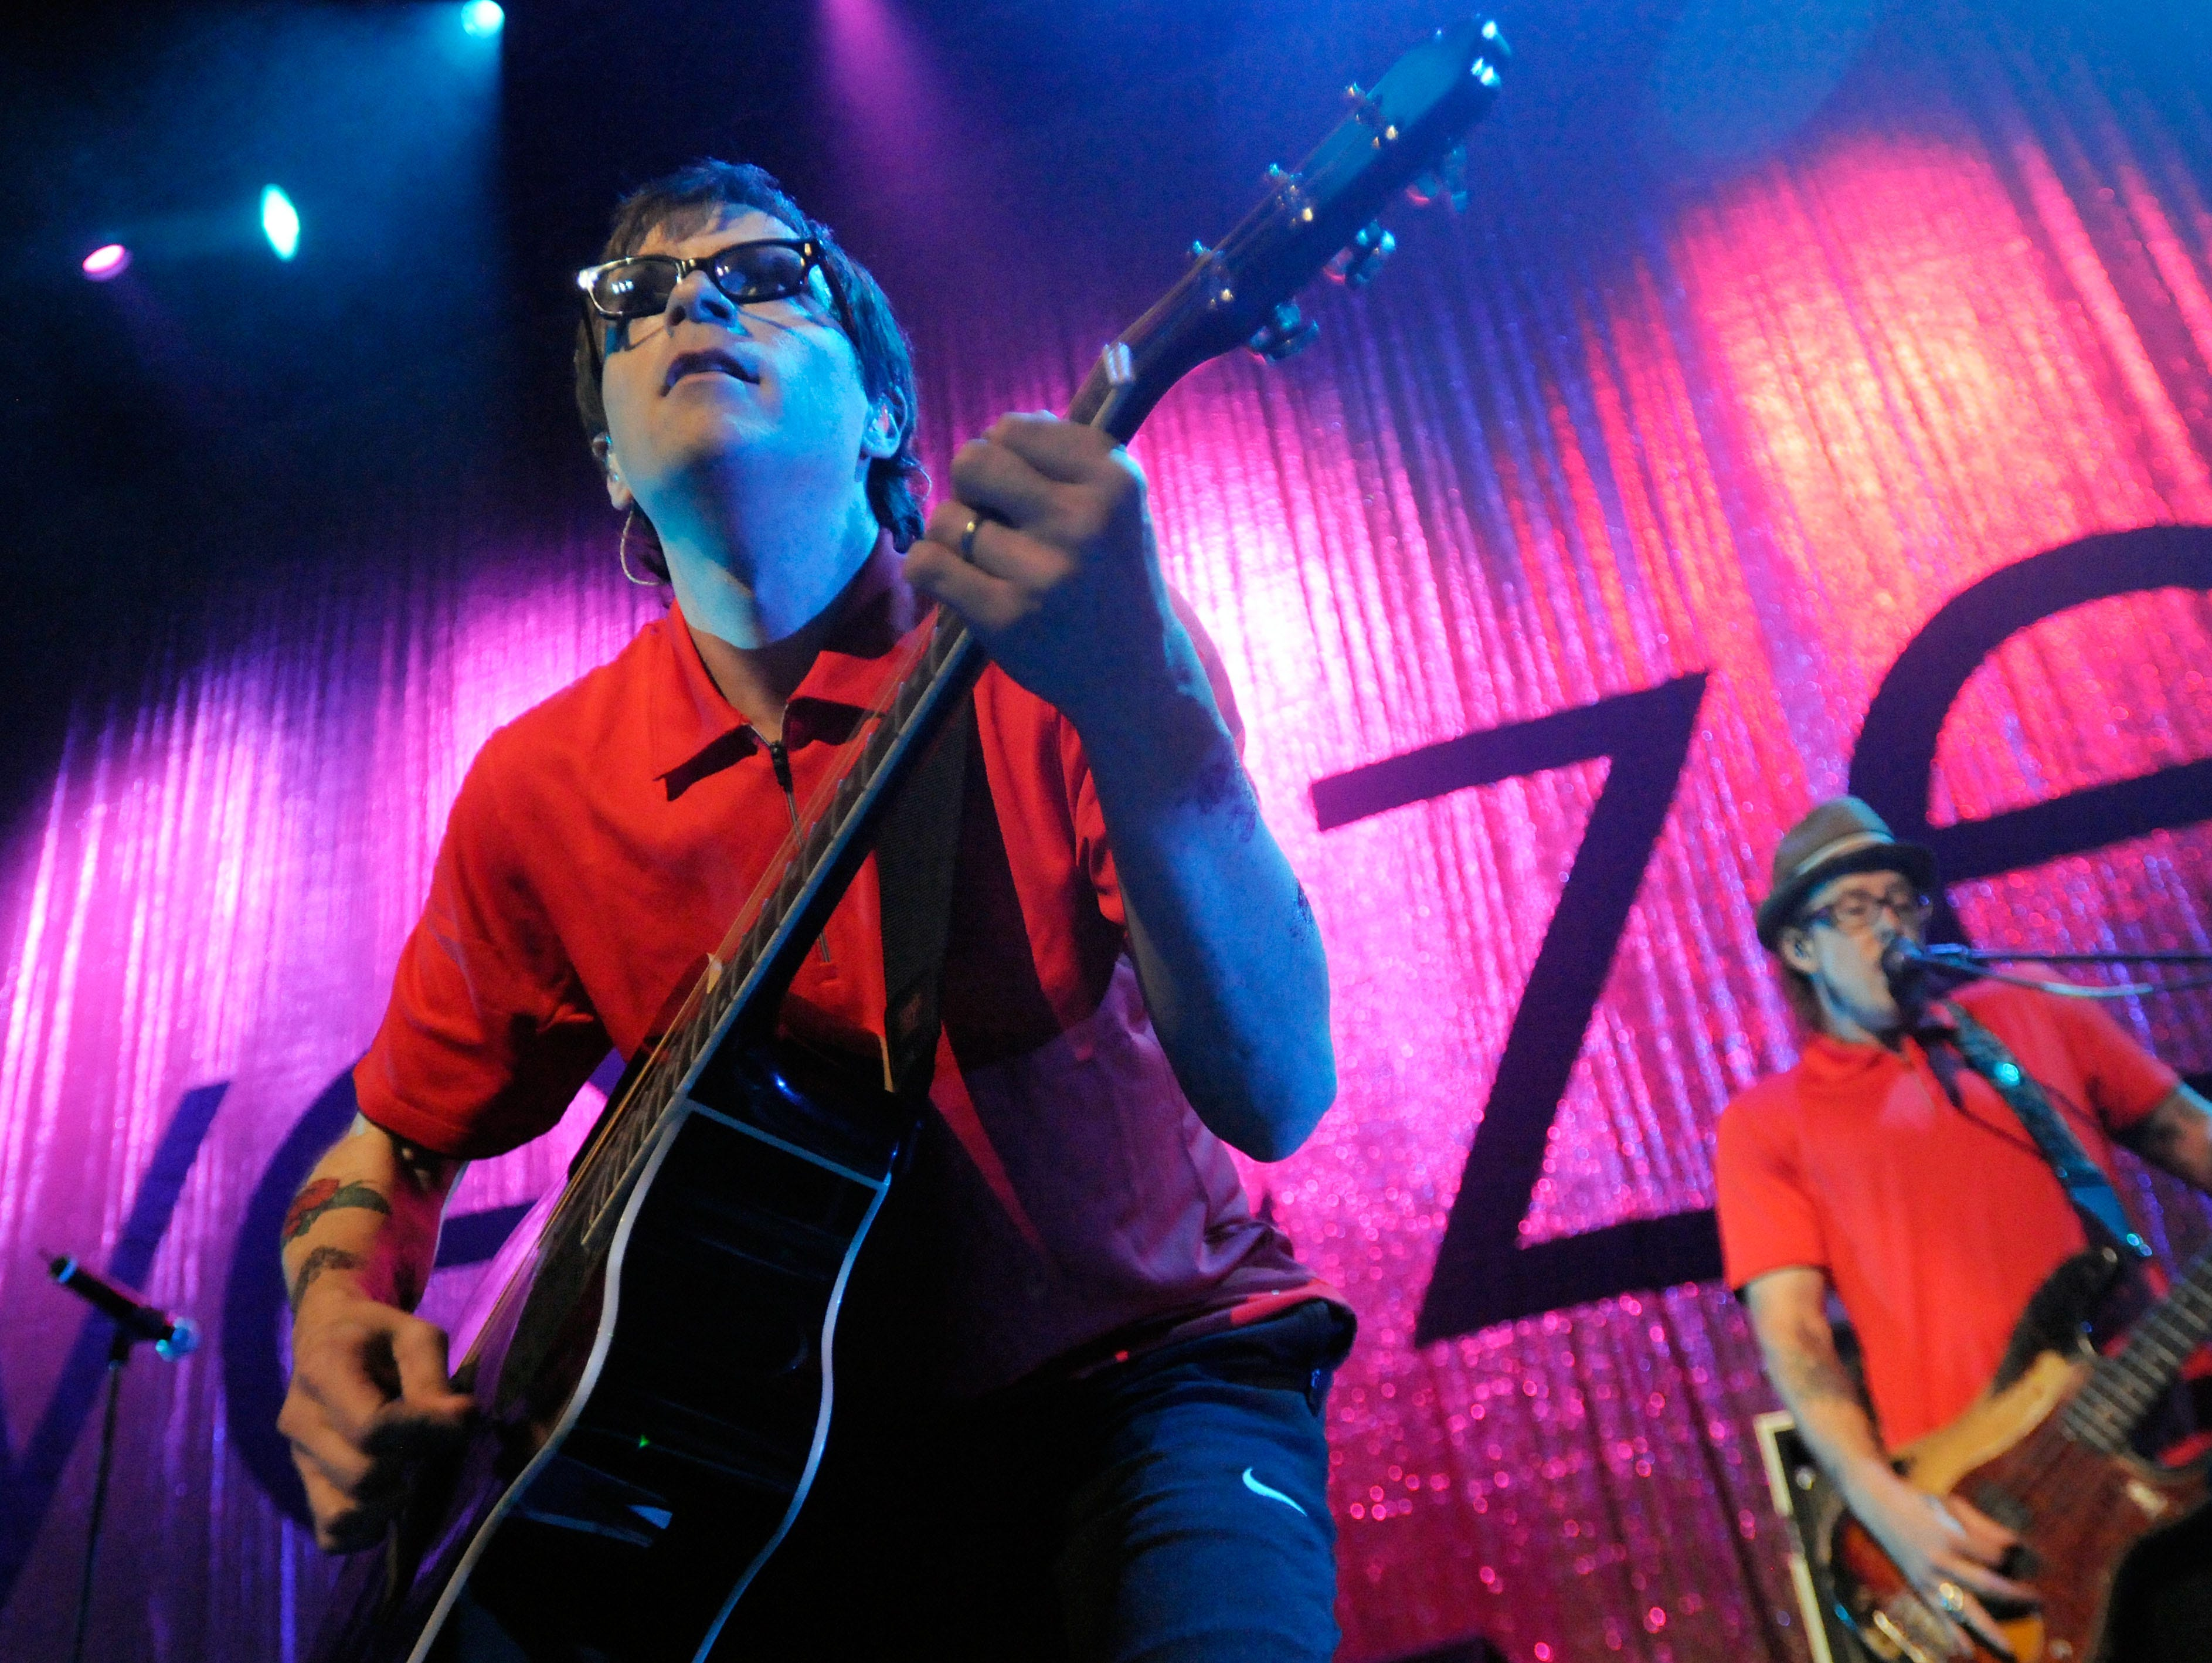 Rivers Cuomo, left, and Scott Shriner, right, of Weezer perform during the Virgin Mobile Freefest concert Sunday, Aug. 30, 2009 at Merriweather Post Pavilion in Columbia, Md. Weezer, featuring Knoxville's own Brian Bell on guitar, is scheduled to perform during the 2010 Bonnaroo Music and Arts Festival, June 10-13, in Manchester, Tenn.